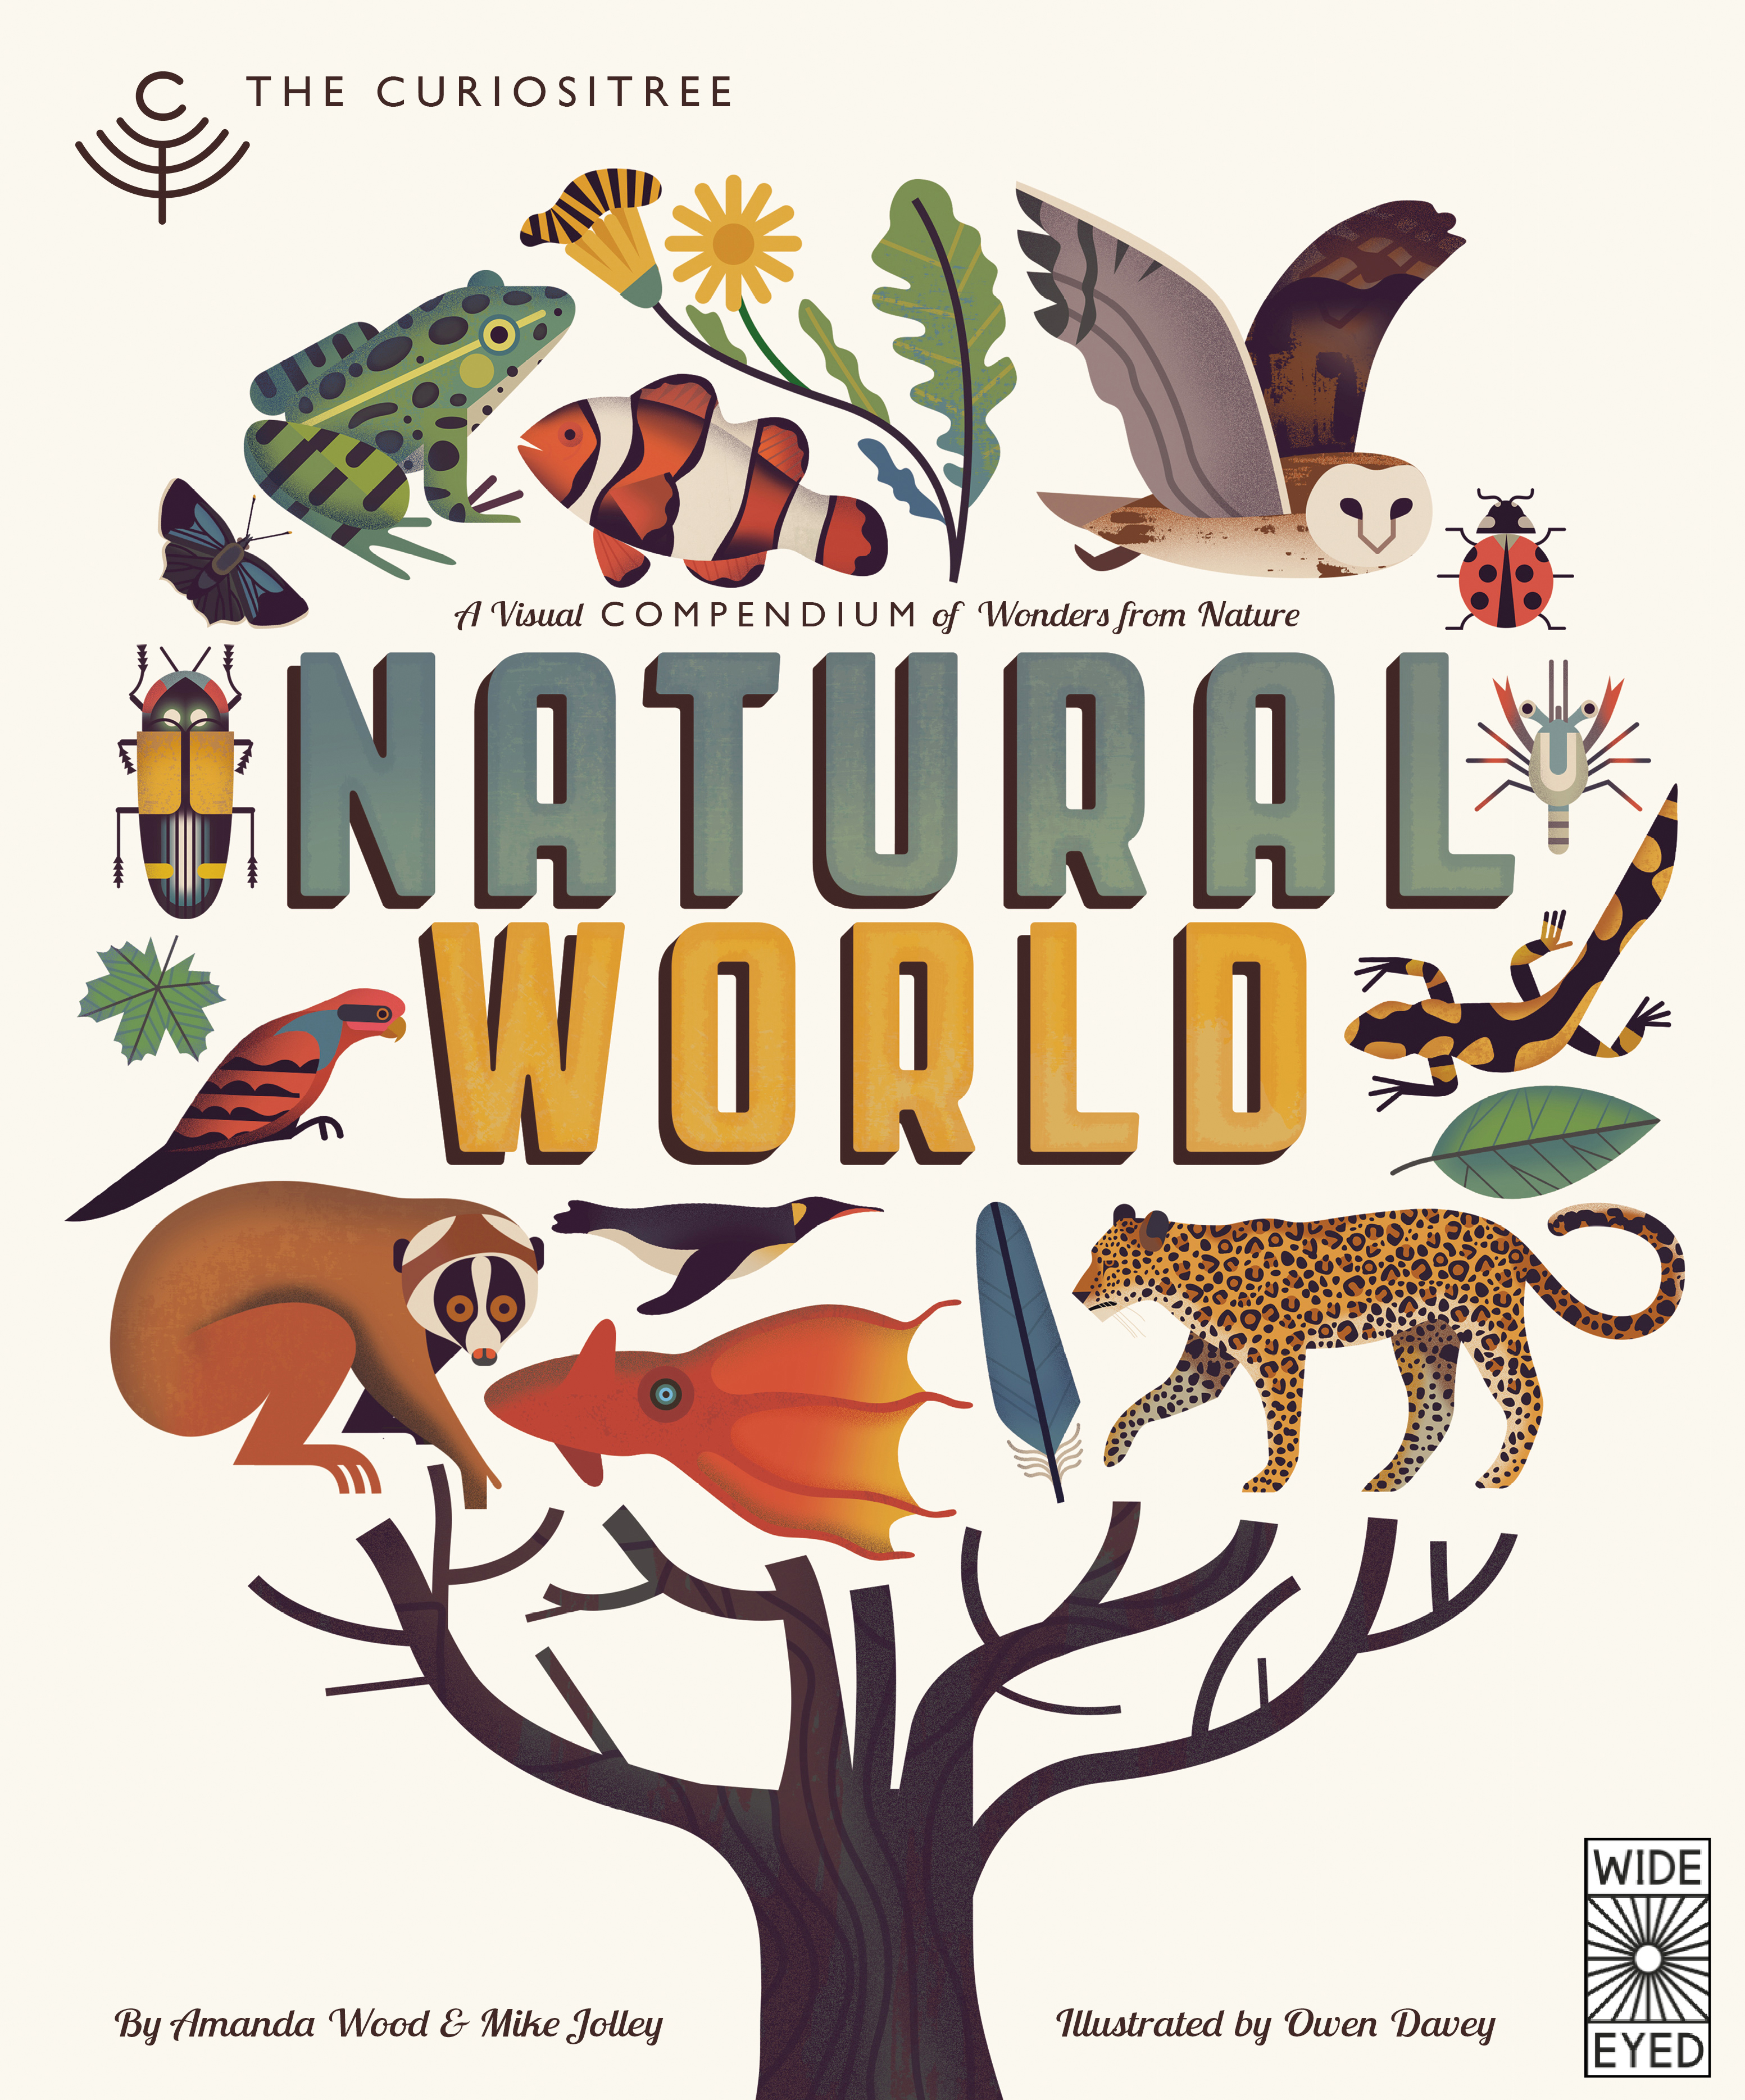 Wonders of nature clipart images vector freeuse library Natural World (Curiositree) - AJ Wood, Mike Jolley and ... vector freeuse library